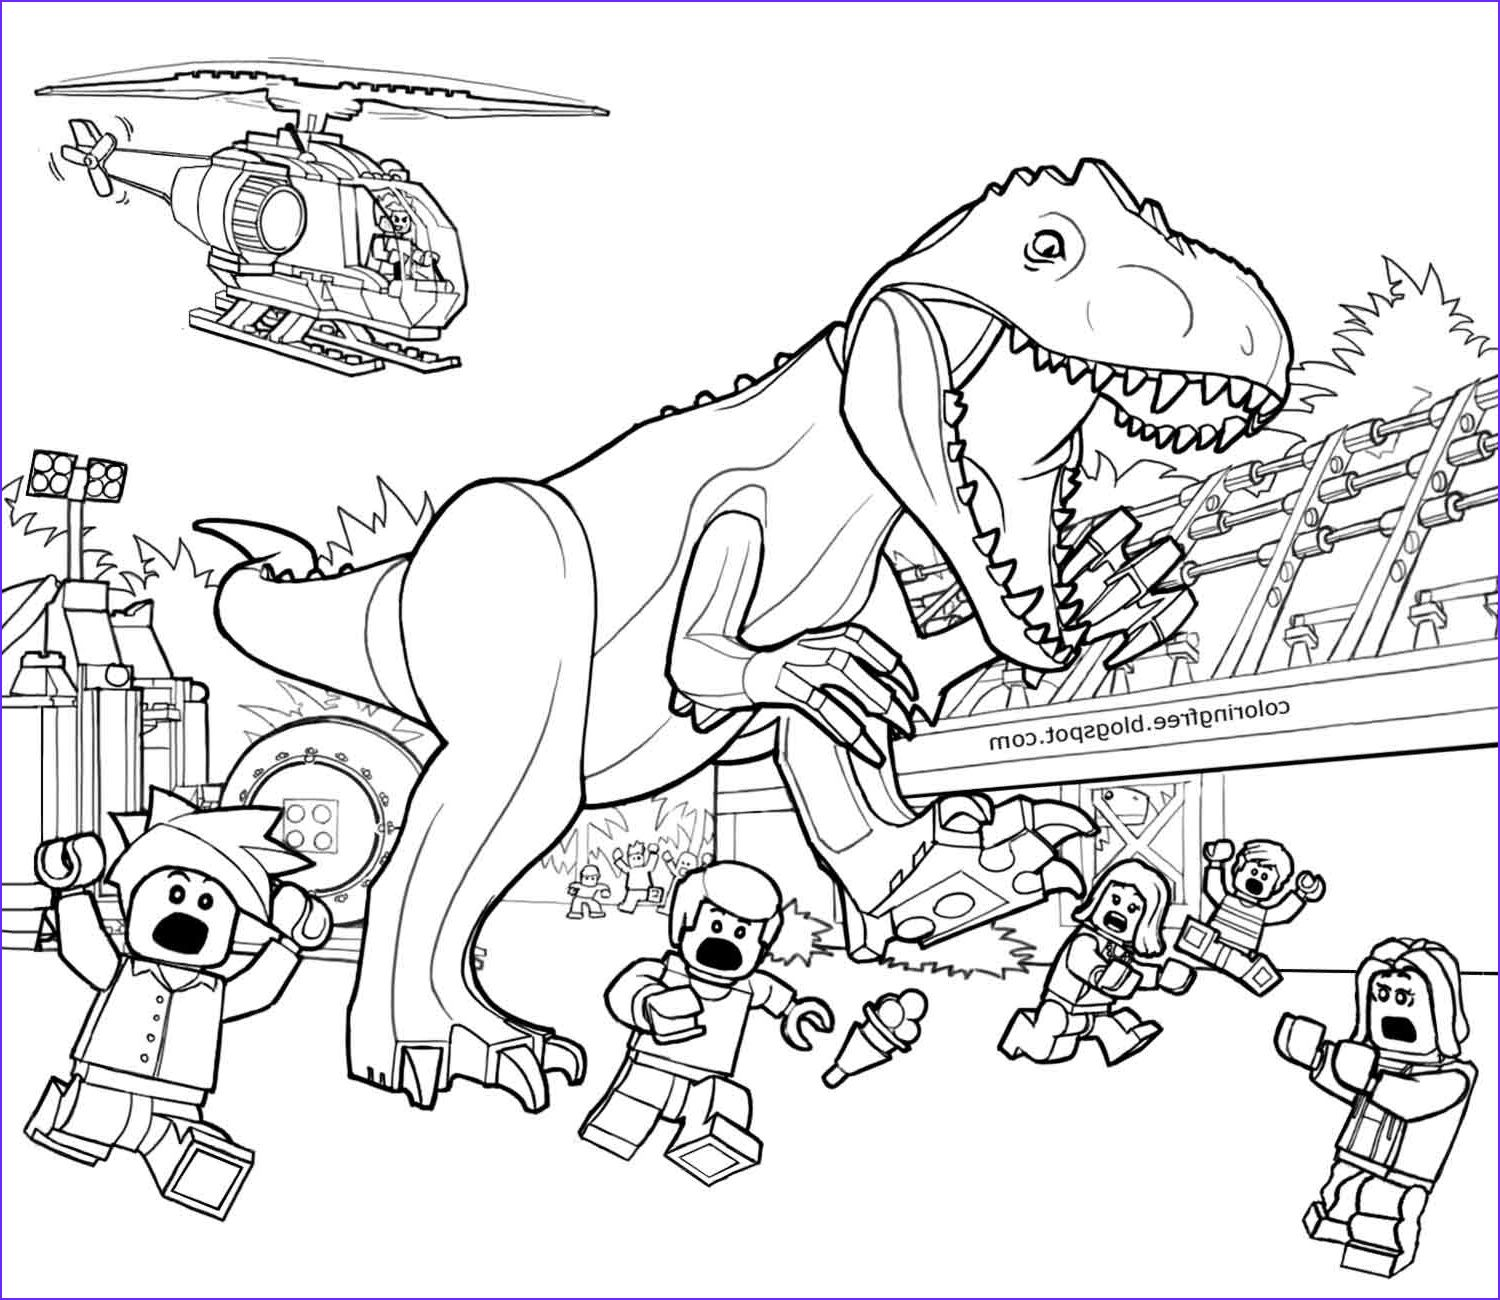 45 Cool Images Of Jurassic World Coloring Pages Coloring Pages Lego Coloring Pages Jurassic World